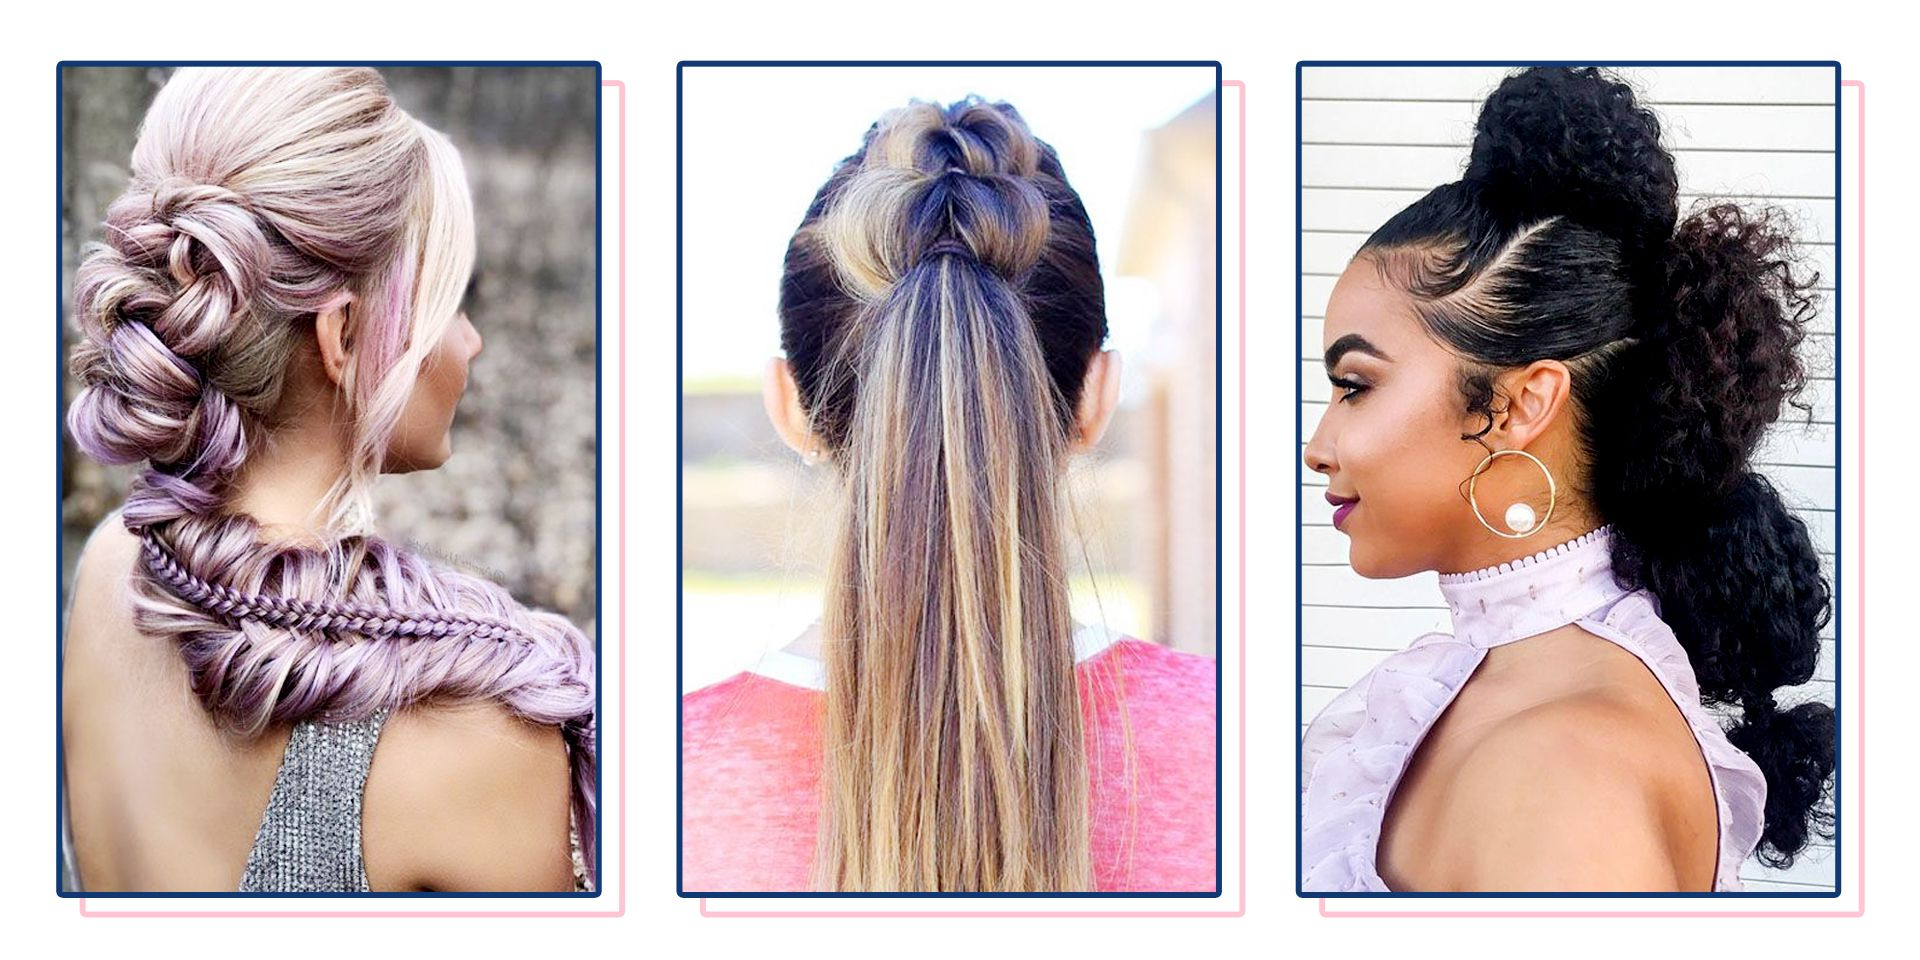 40 Best Prom Updos For 2019 – Easy Prom Updo Hairstyles With Regard To Well Liked Sky High Pony Updo Hairstyles (View 6 of 20)